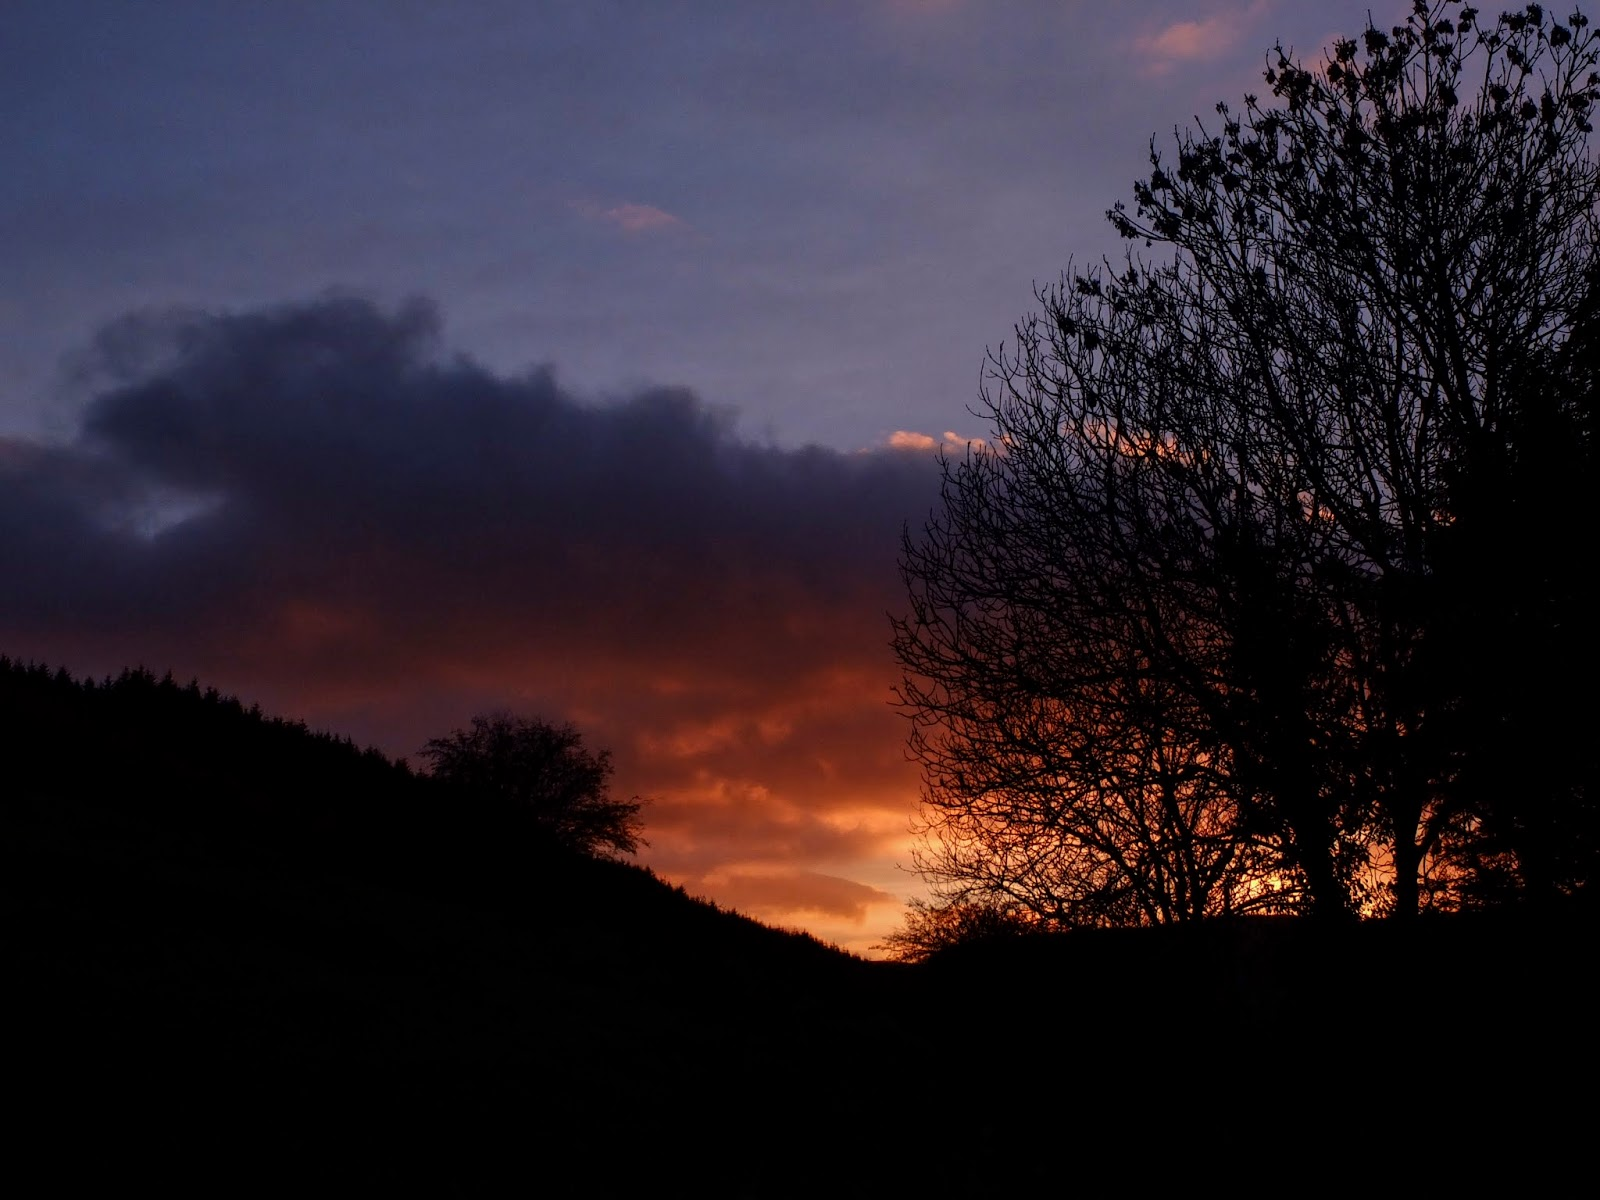 Sunset on a hillside in the Boggeragh Mountains in North Cork.